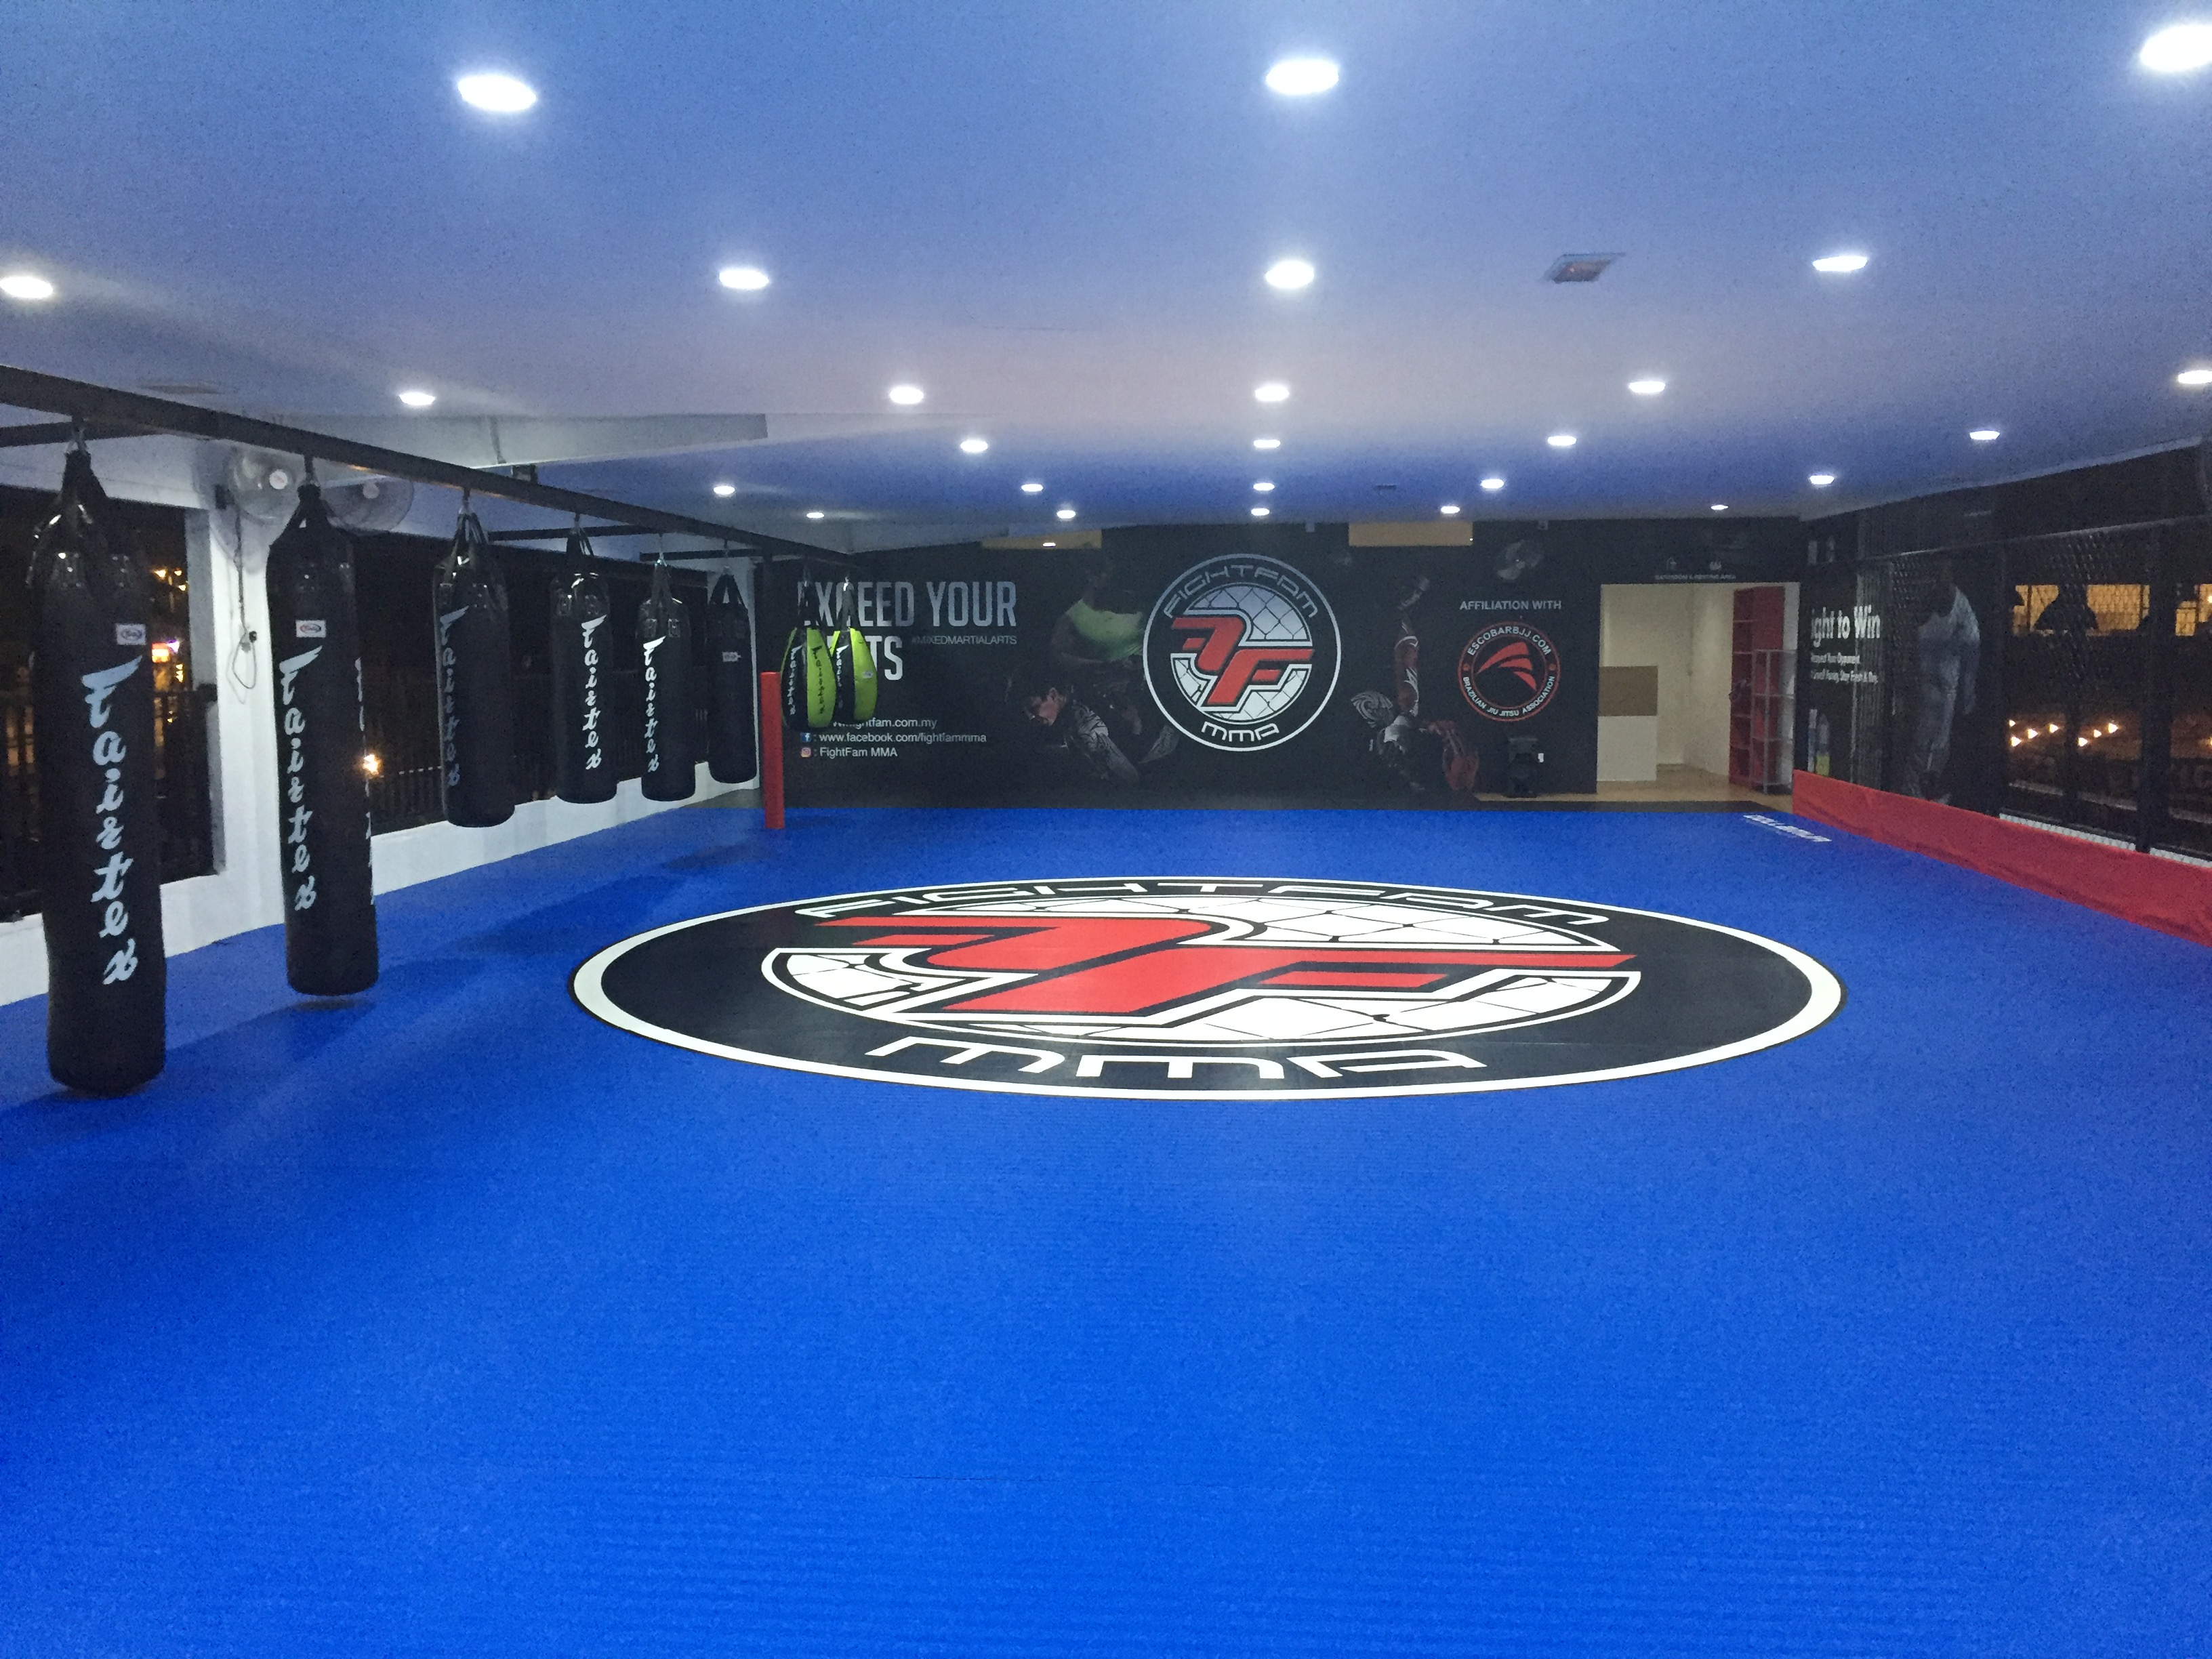 New affiliation gym in kepong brazilian jiu jitsu mma